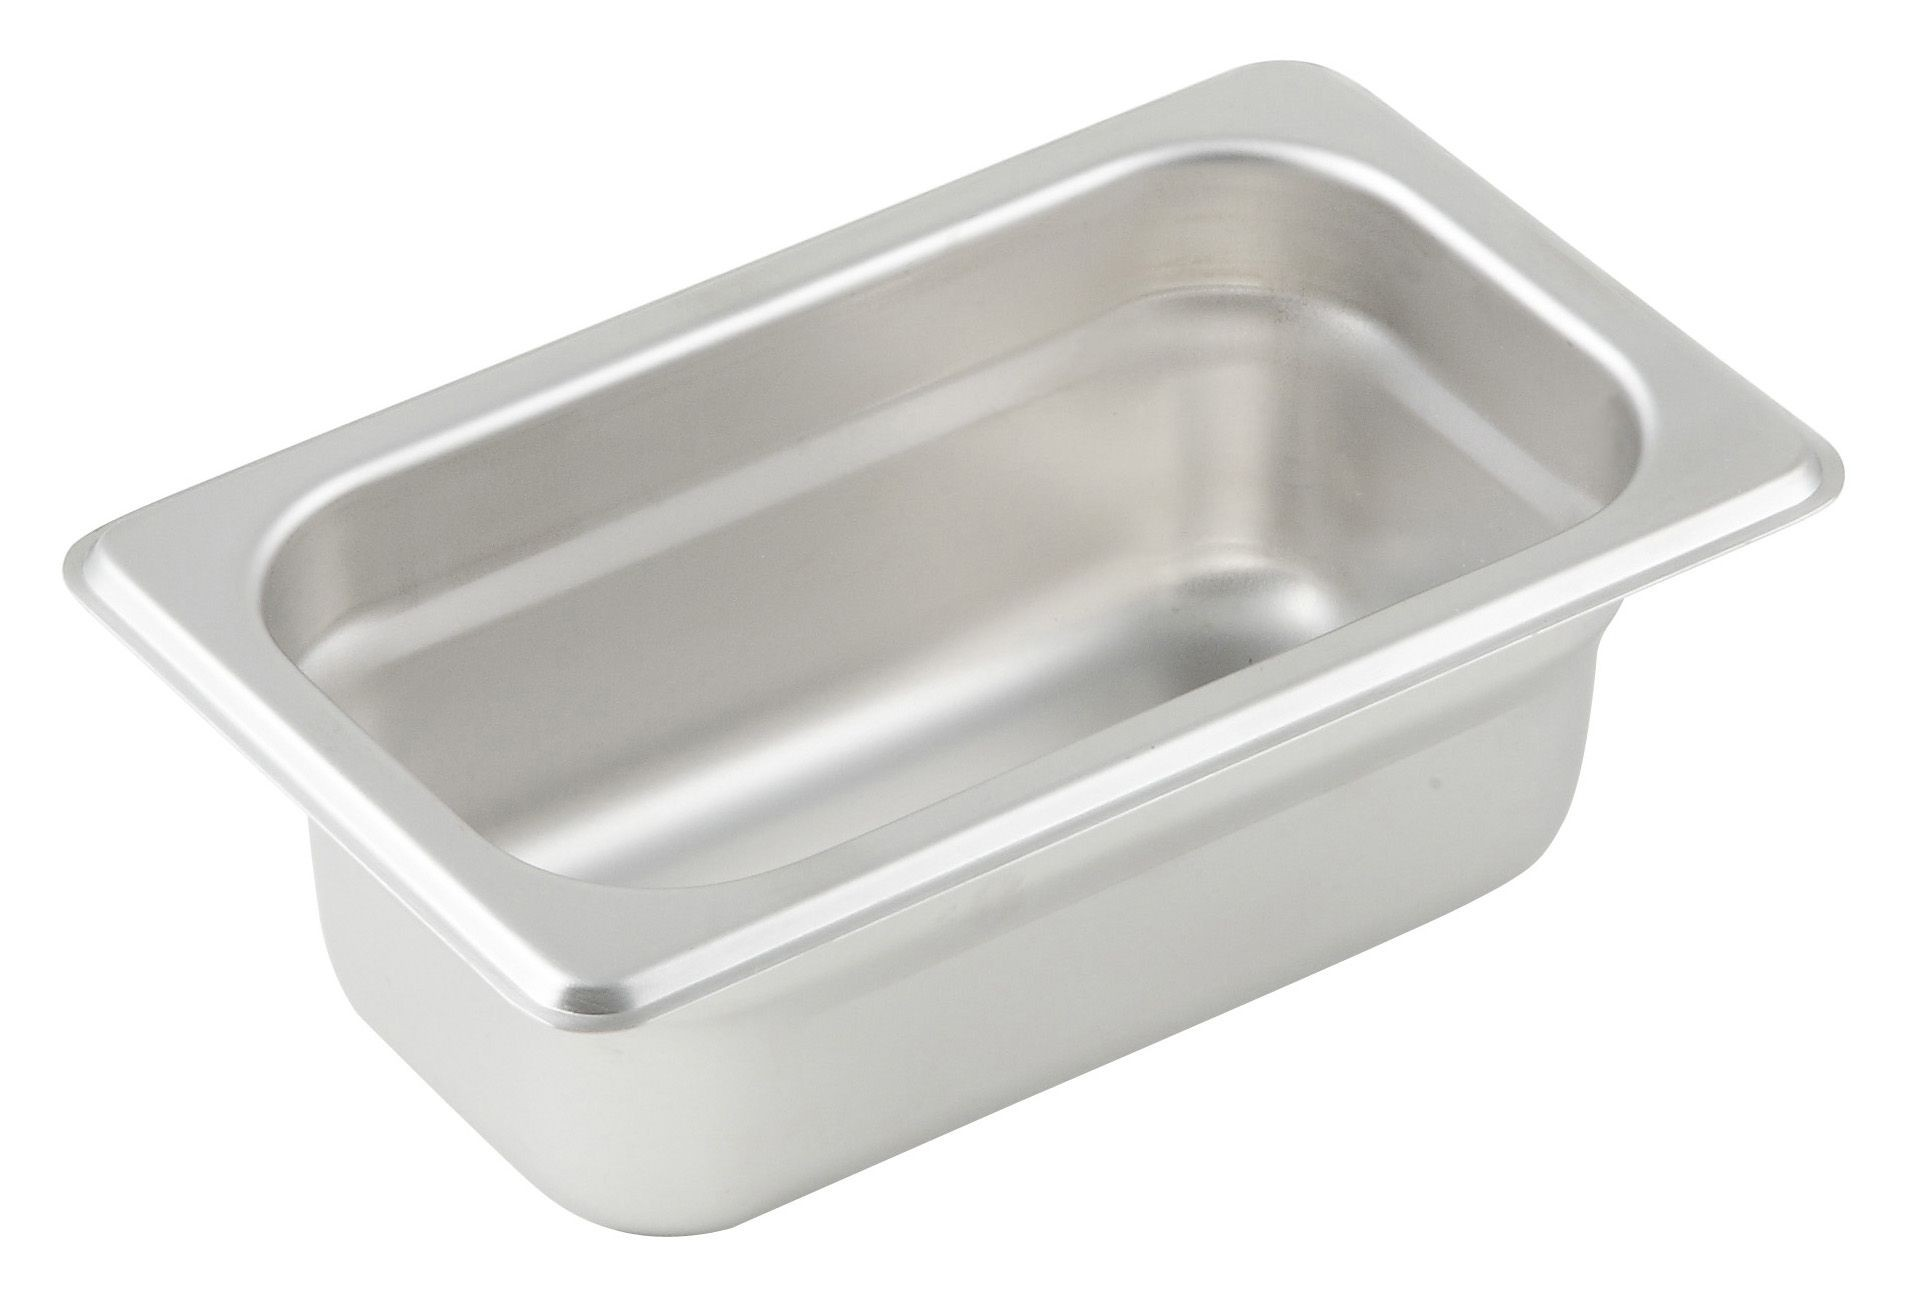 "Winco spjp-902 1/9 Size Anti-Jam 23 Gauge Steam Table Pan 2-1/2"" Deep"